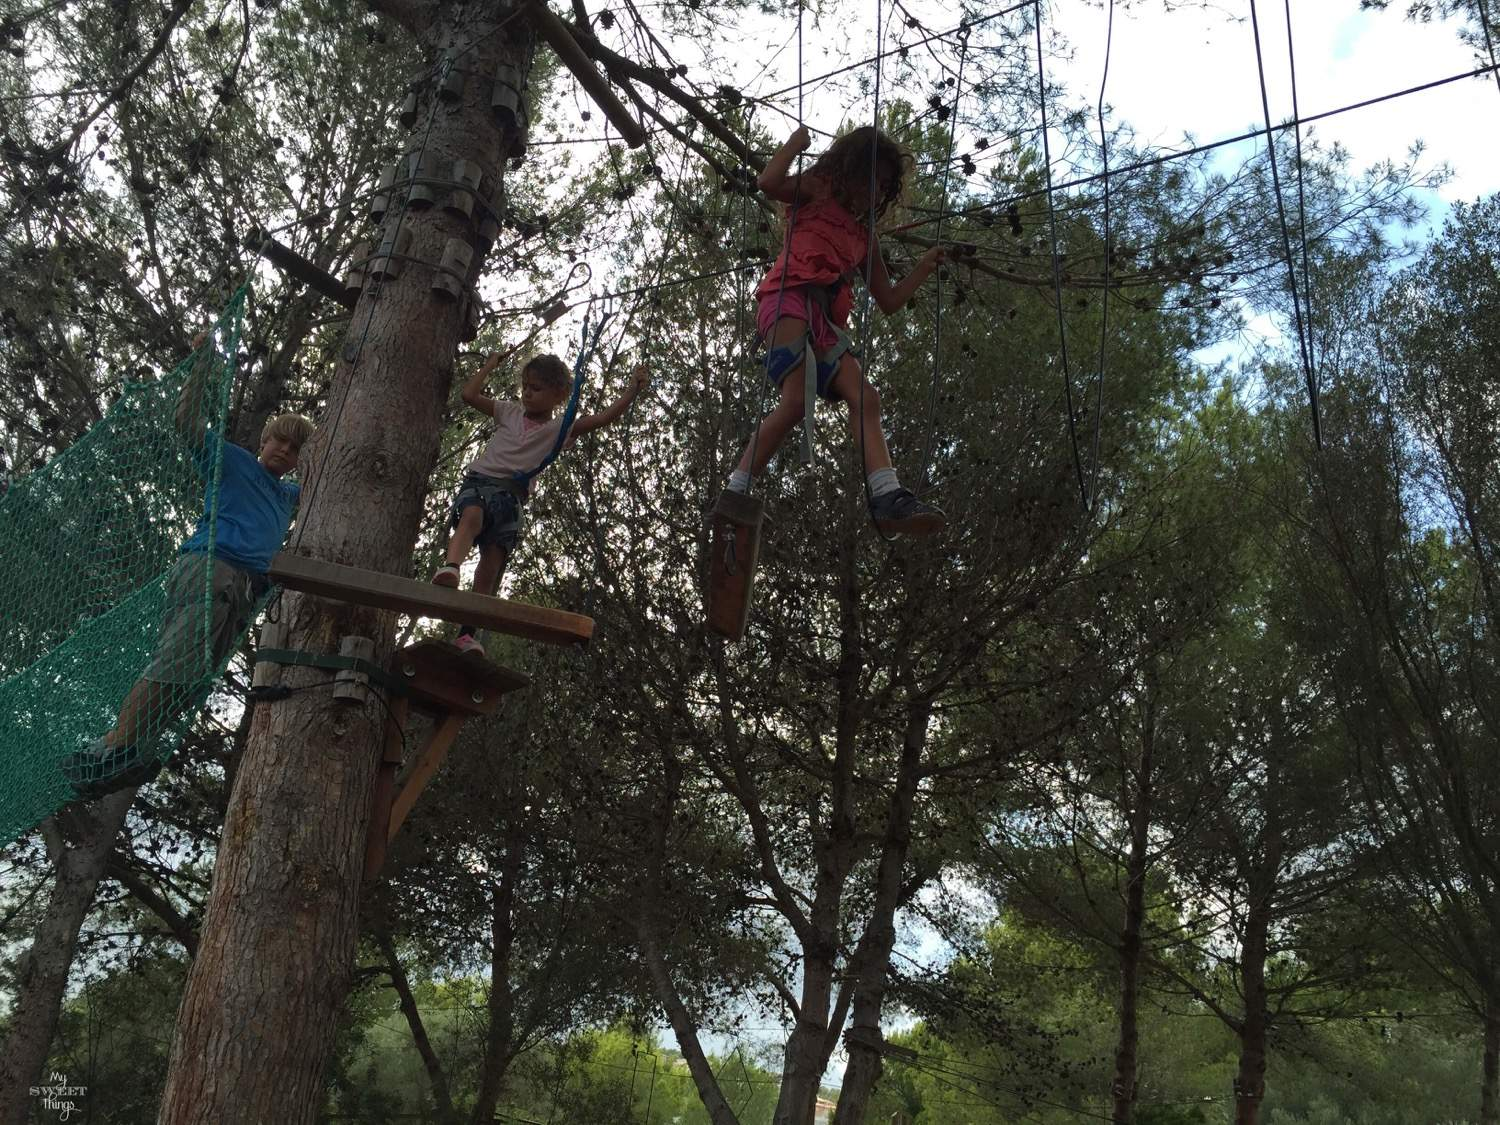 What to do in summer in Mallorca - Climbing trees